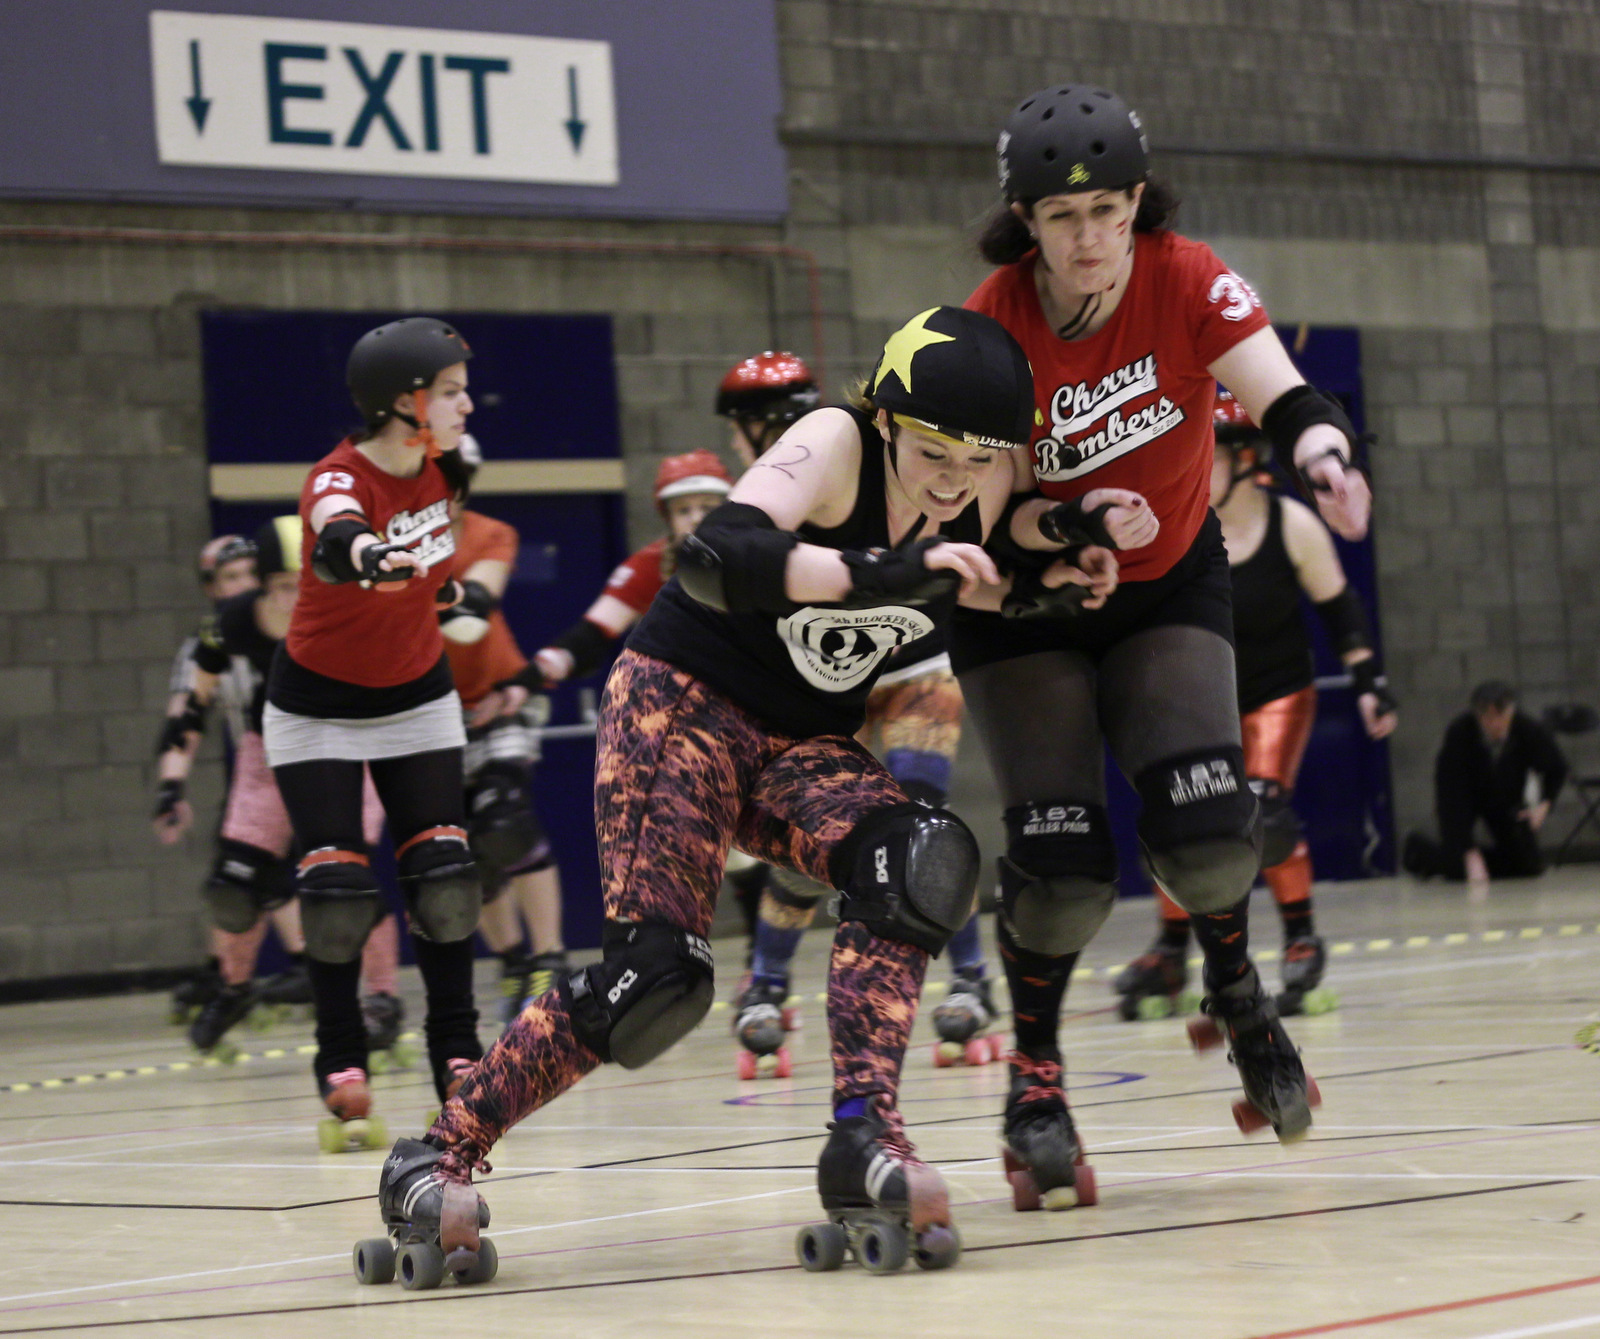 """New GRD Irn Bruiser Mona Rampage, playing as part of the composite team """"The Gavehearts"""" in Edinburgh."""